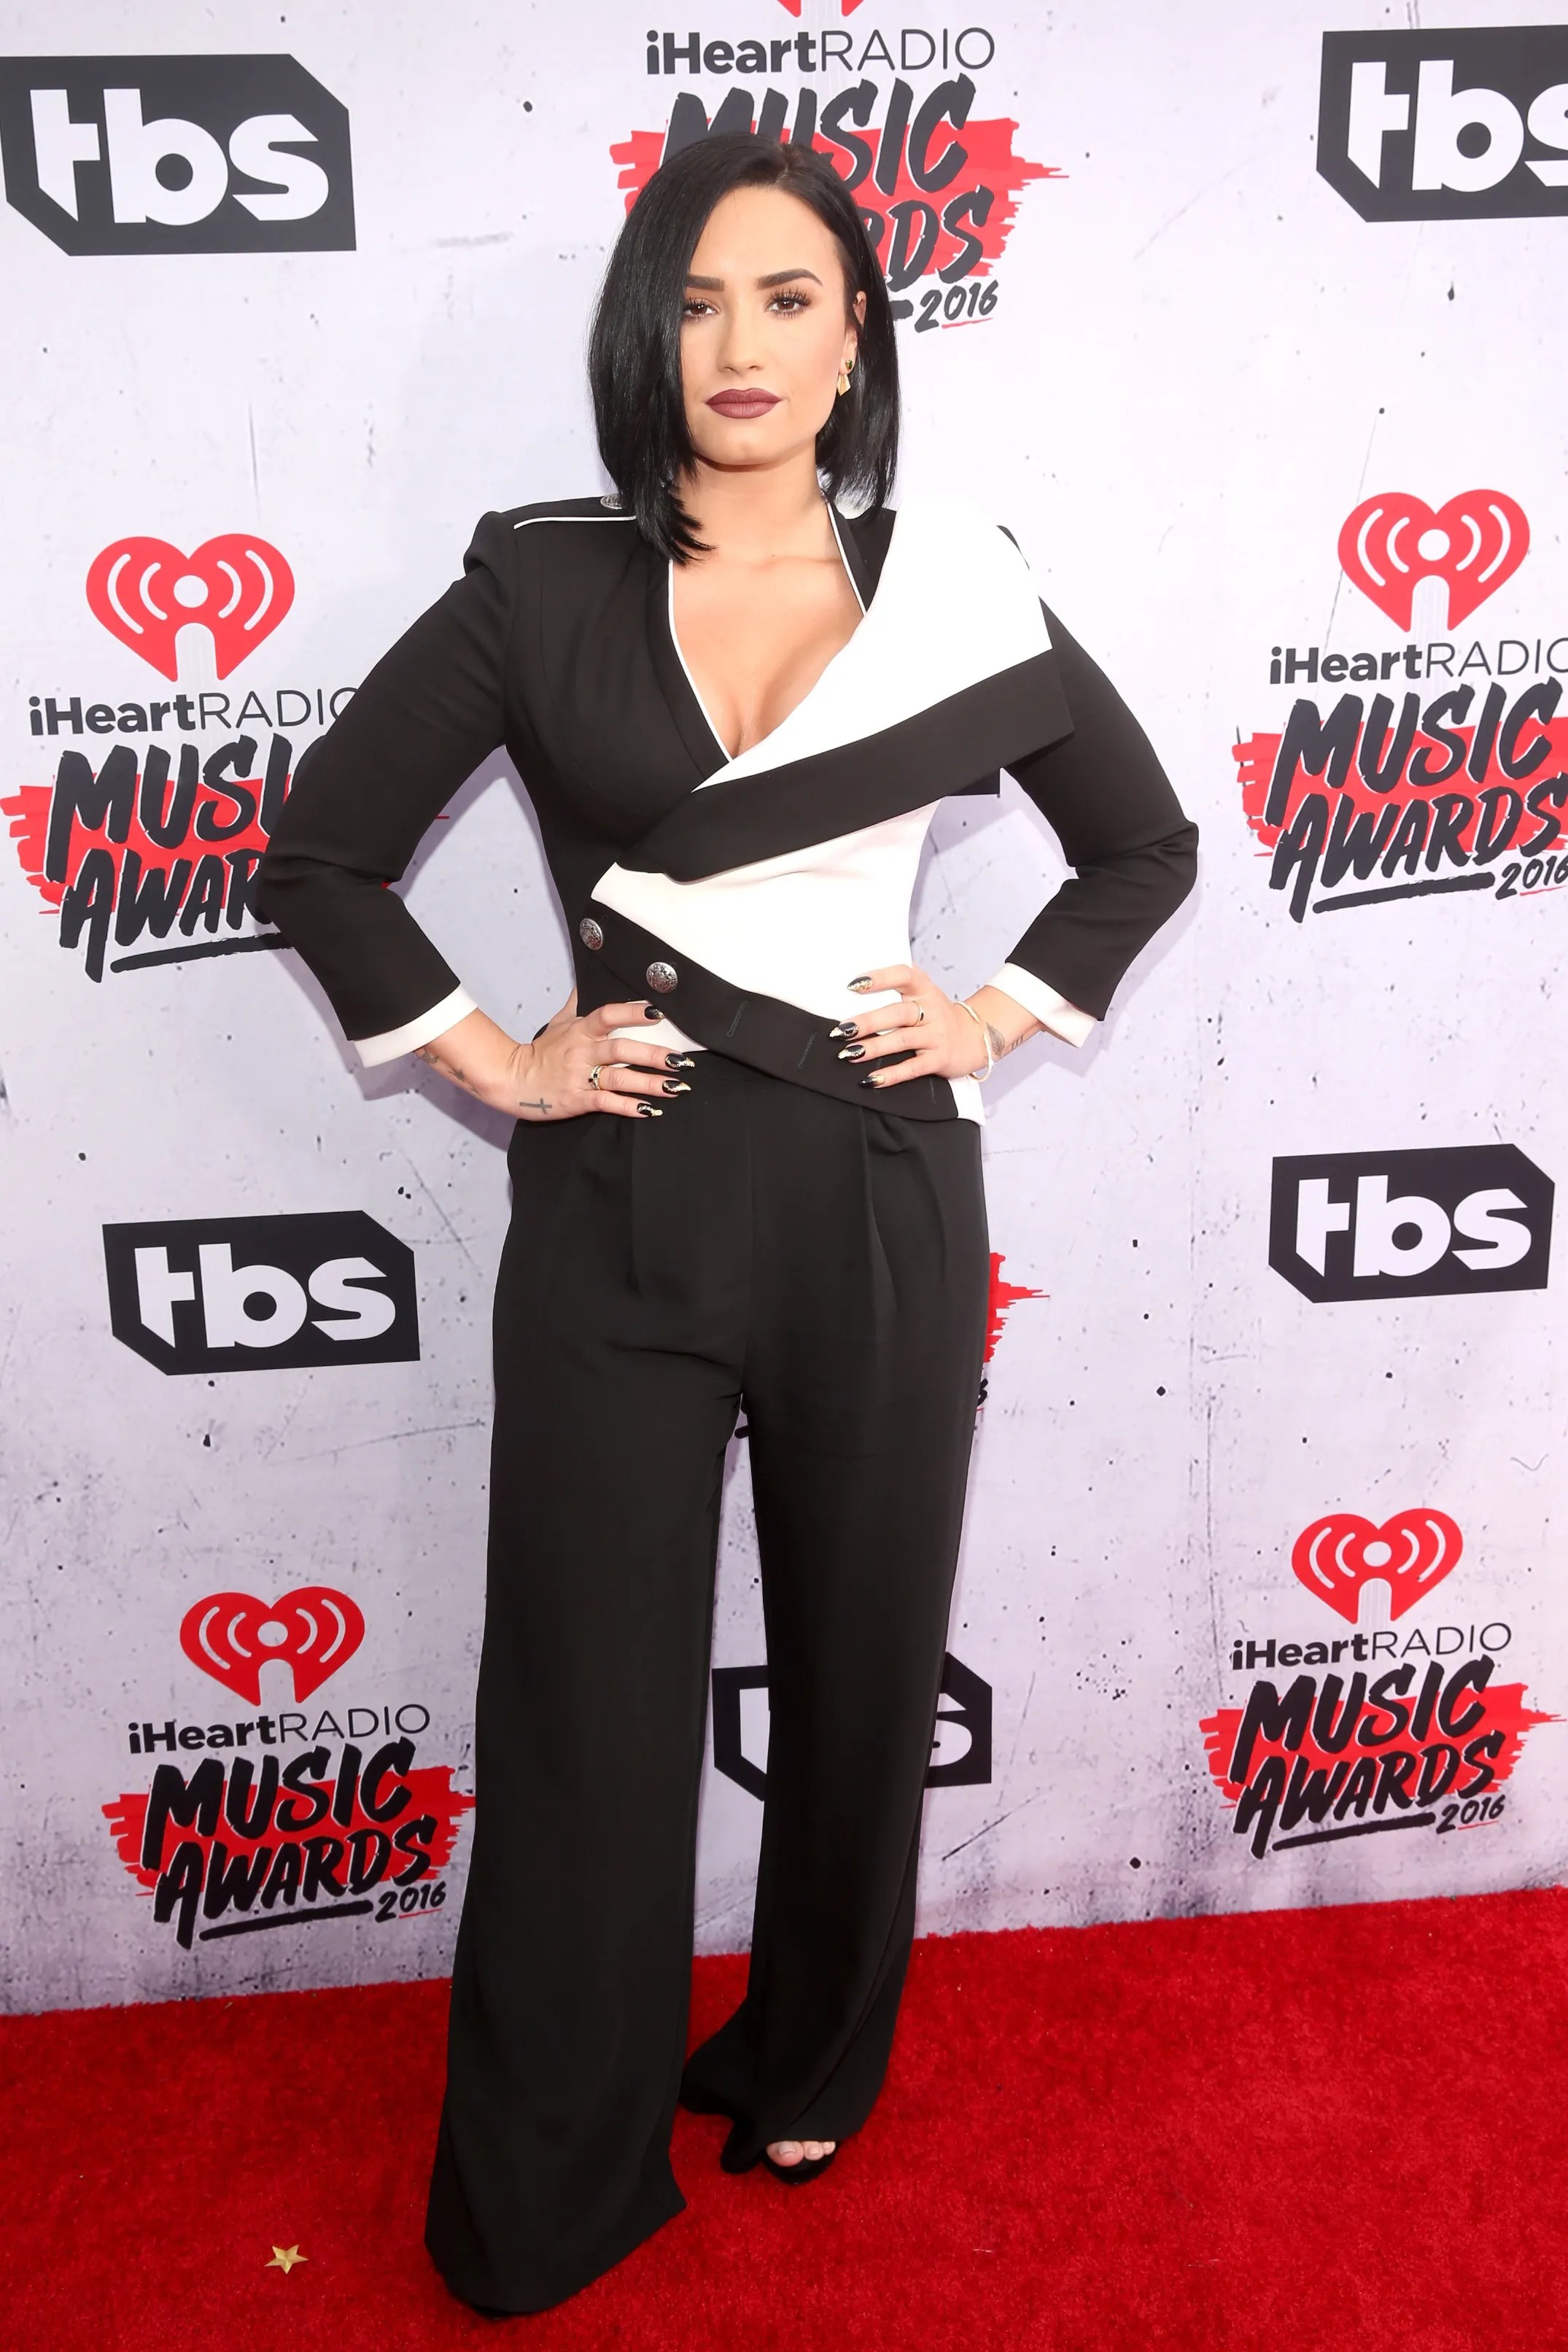 IHeart Radio Awards Best Dressed Best Outfits On Award